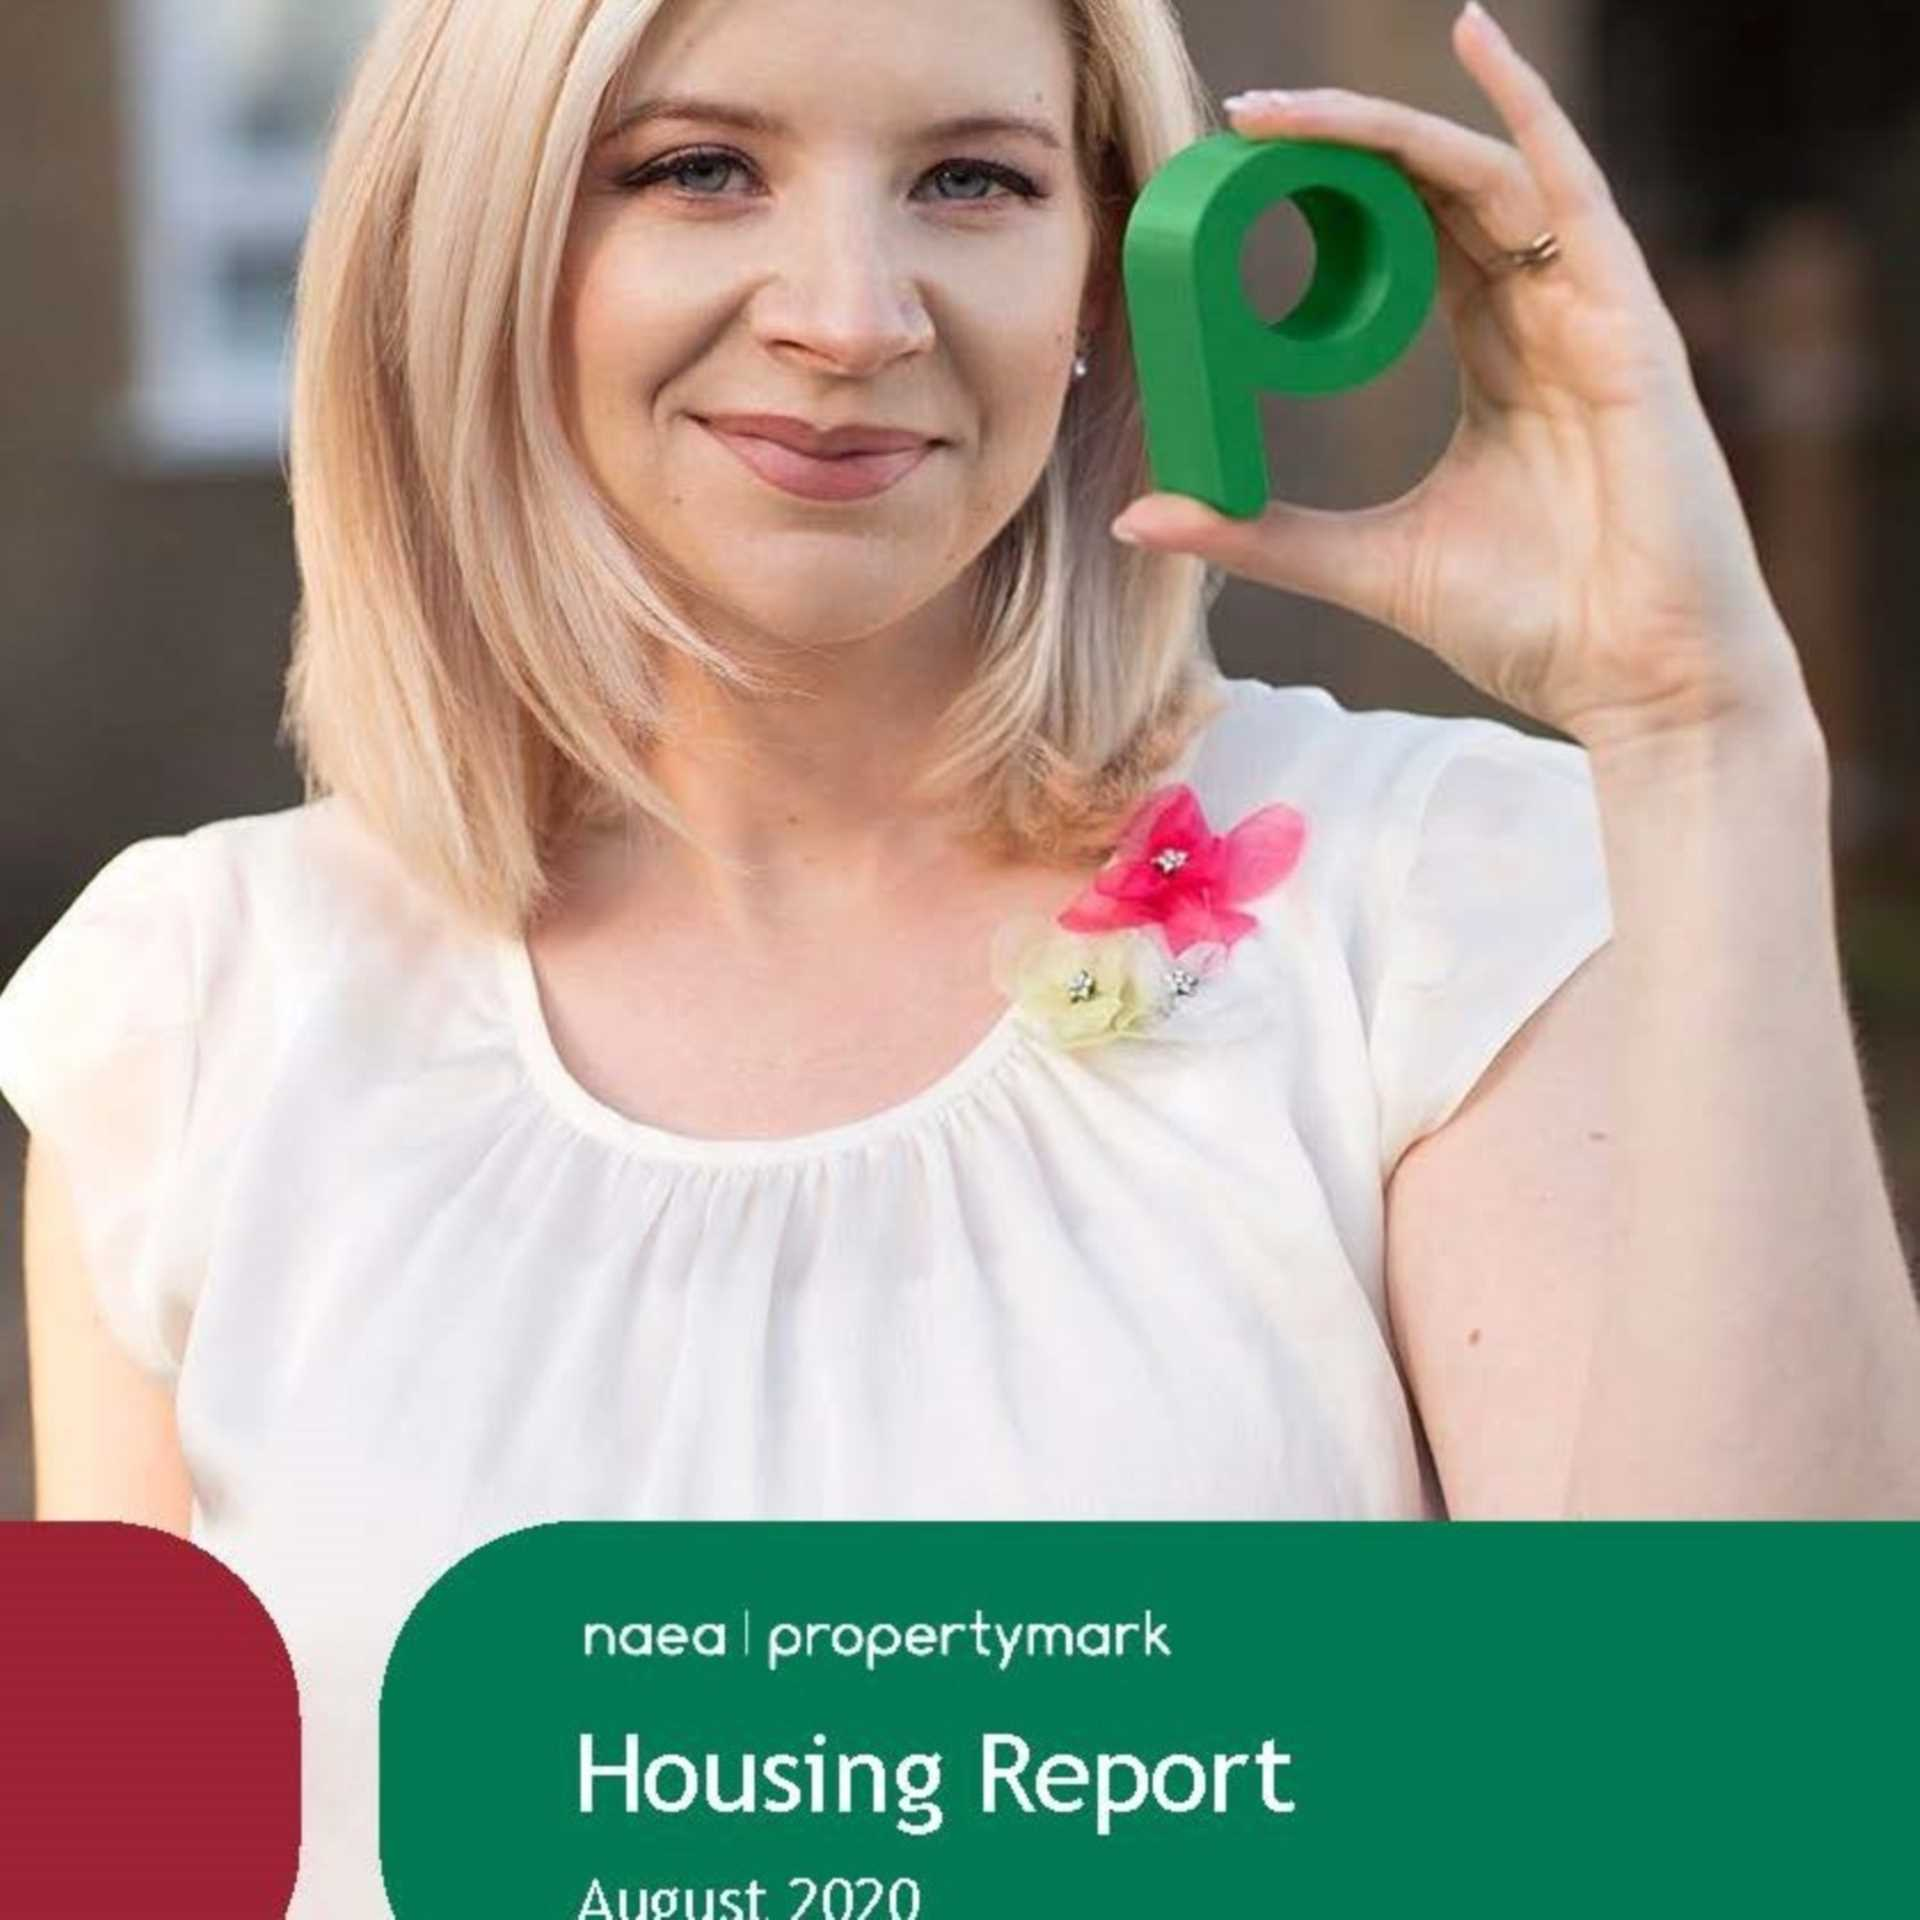 Housing Report, August 2020